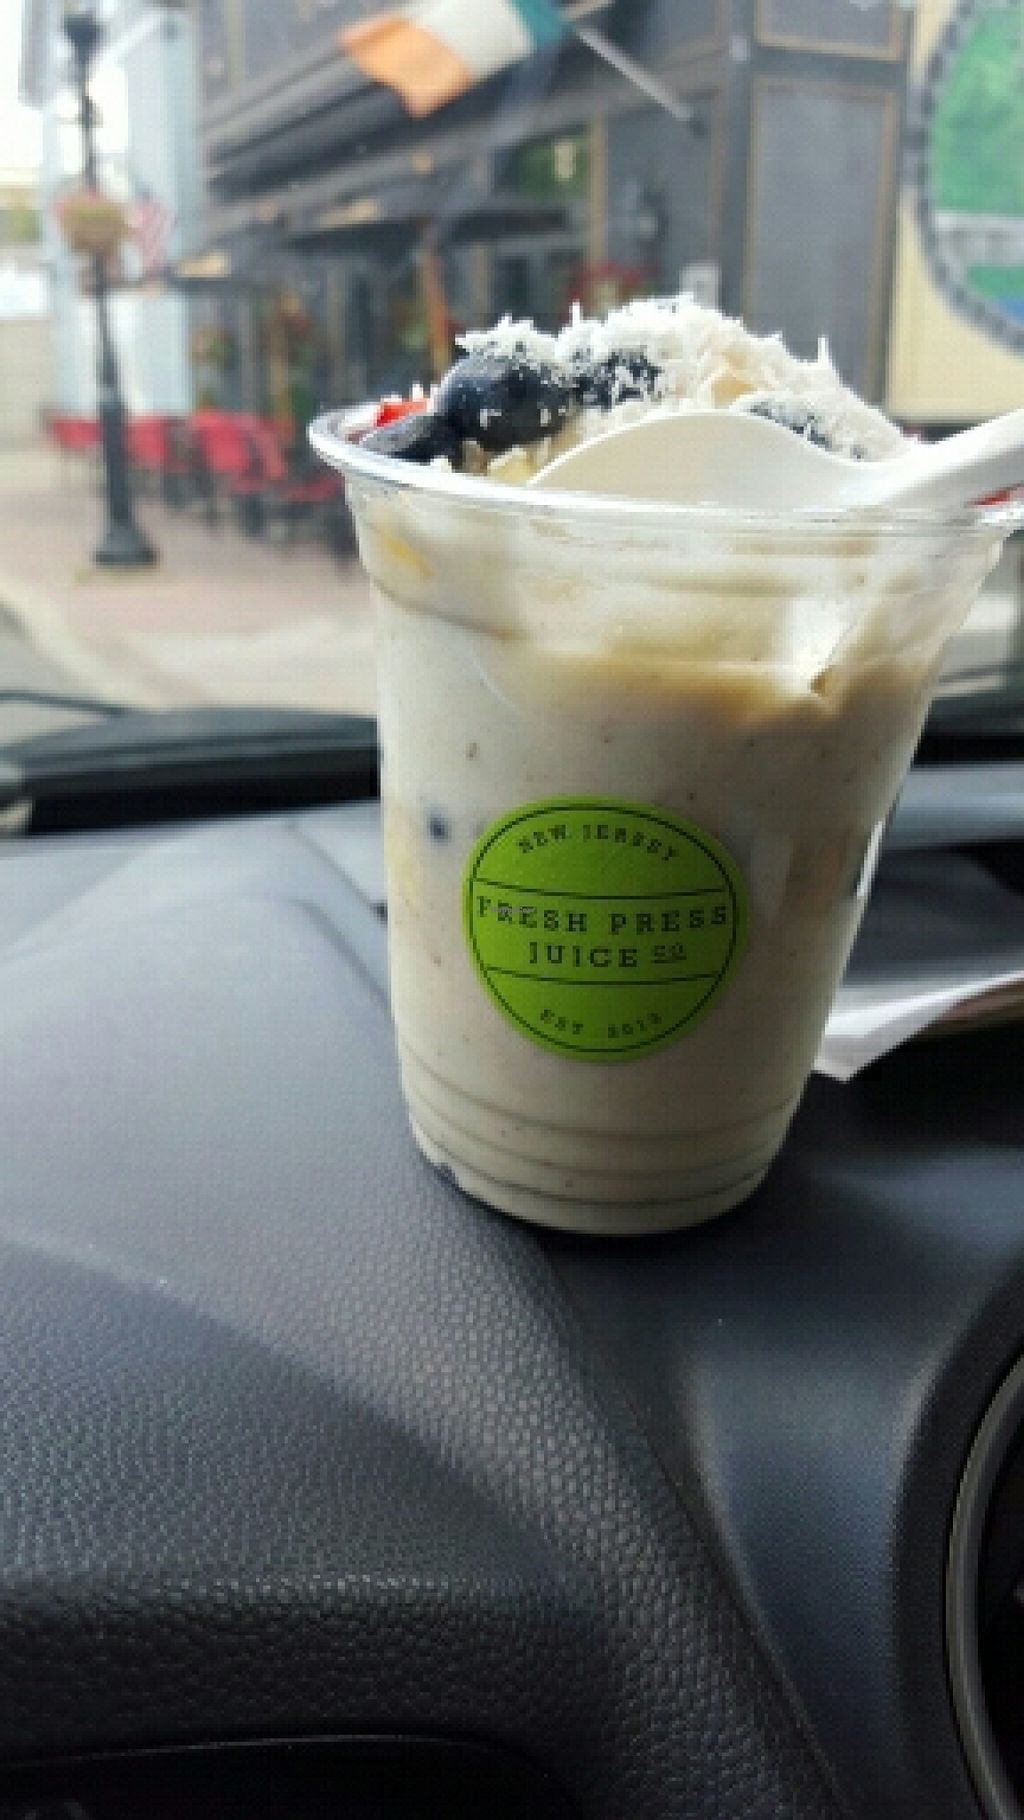 """Photo of Fresh Press Juice Co  by <a href=""""/members/profile/Fierrito"""">Fierrito</a> <br/>Banana whip , Amazing  <br/> June 30, 2016  - <a href='/contact/abuse/image/53057/157018'>Report</a>"""